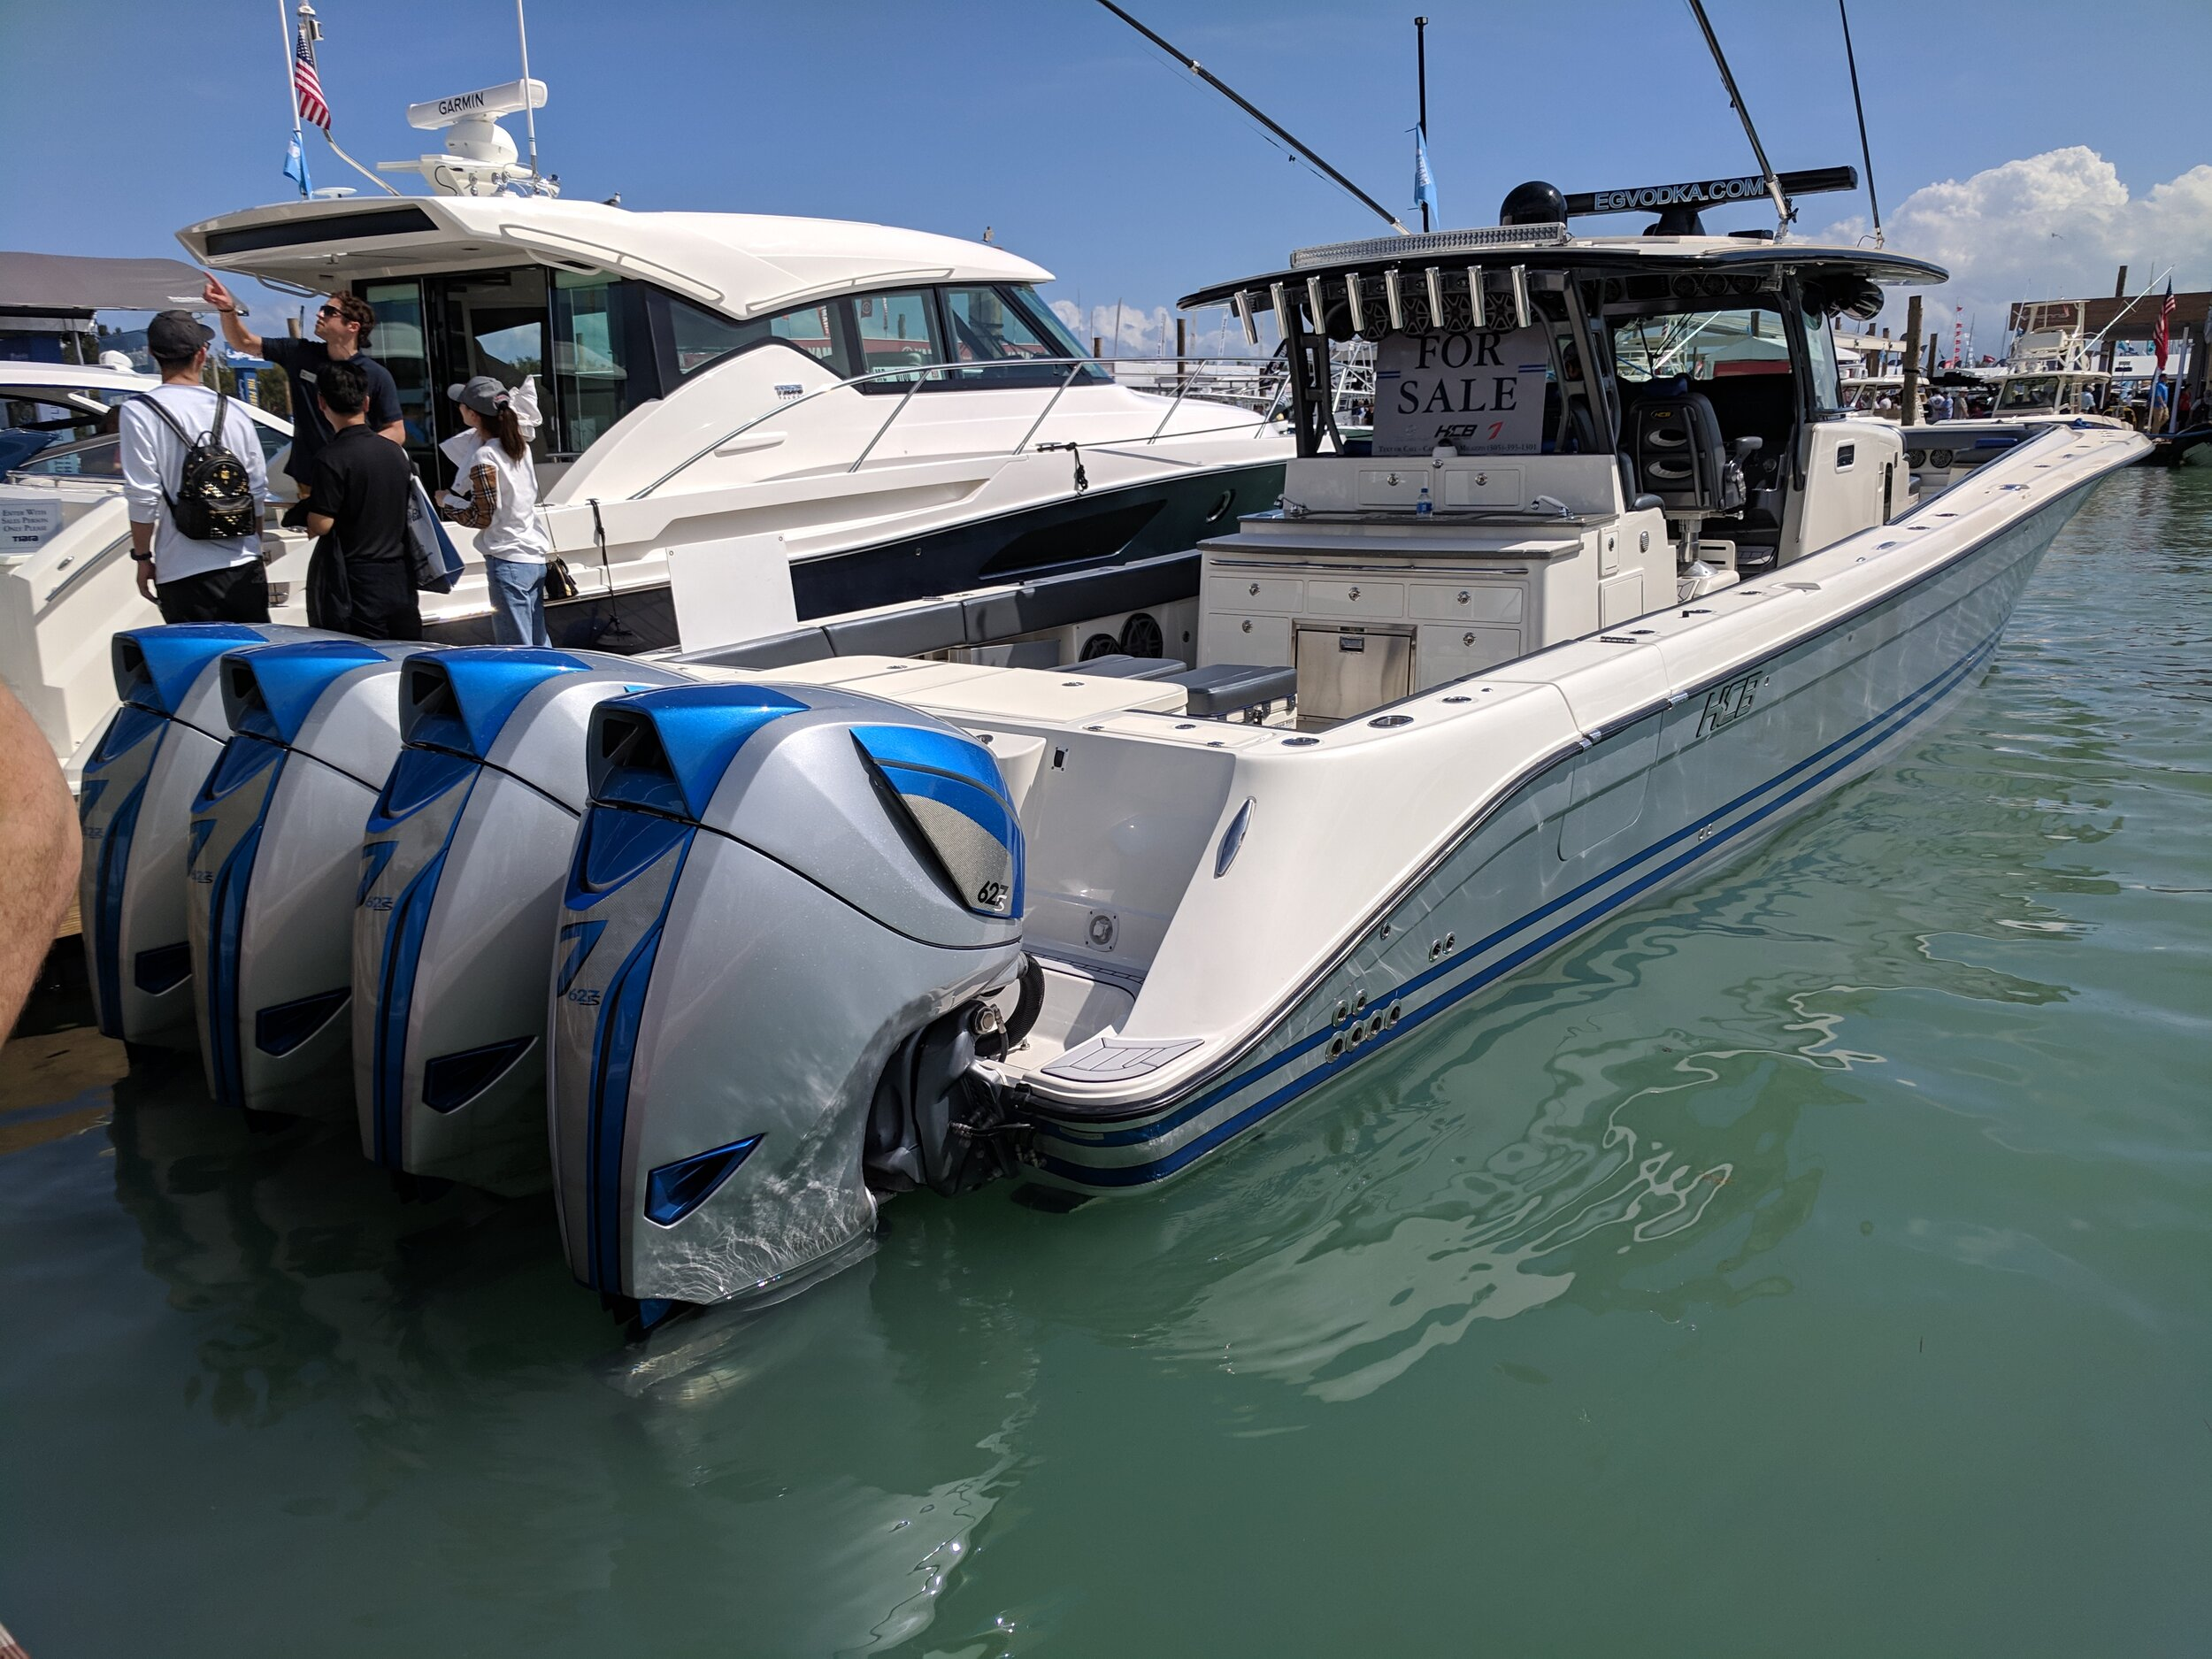 When you can barely fit the engines on the transom, you've gone too far. Even with the massive power of the quad Seven Marine outboards, this giant HCB still is no performer. Not a great design in my opinion.